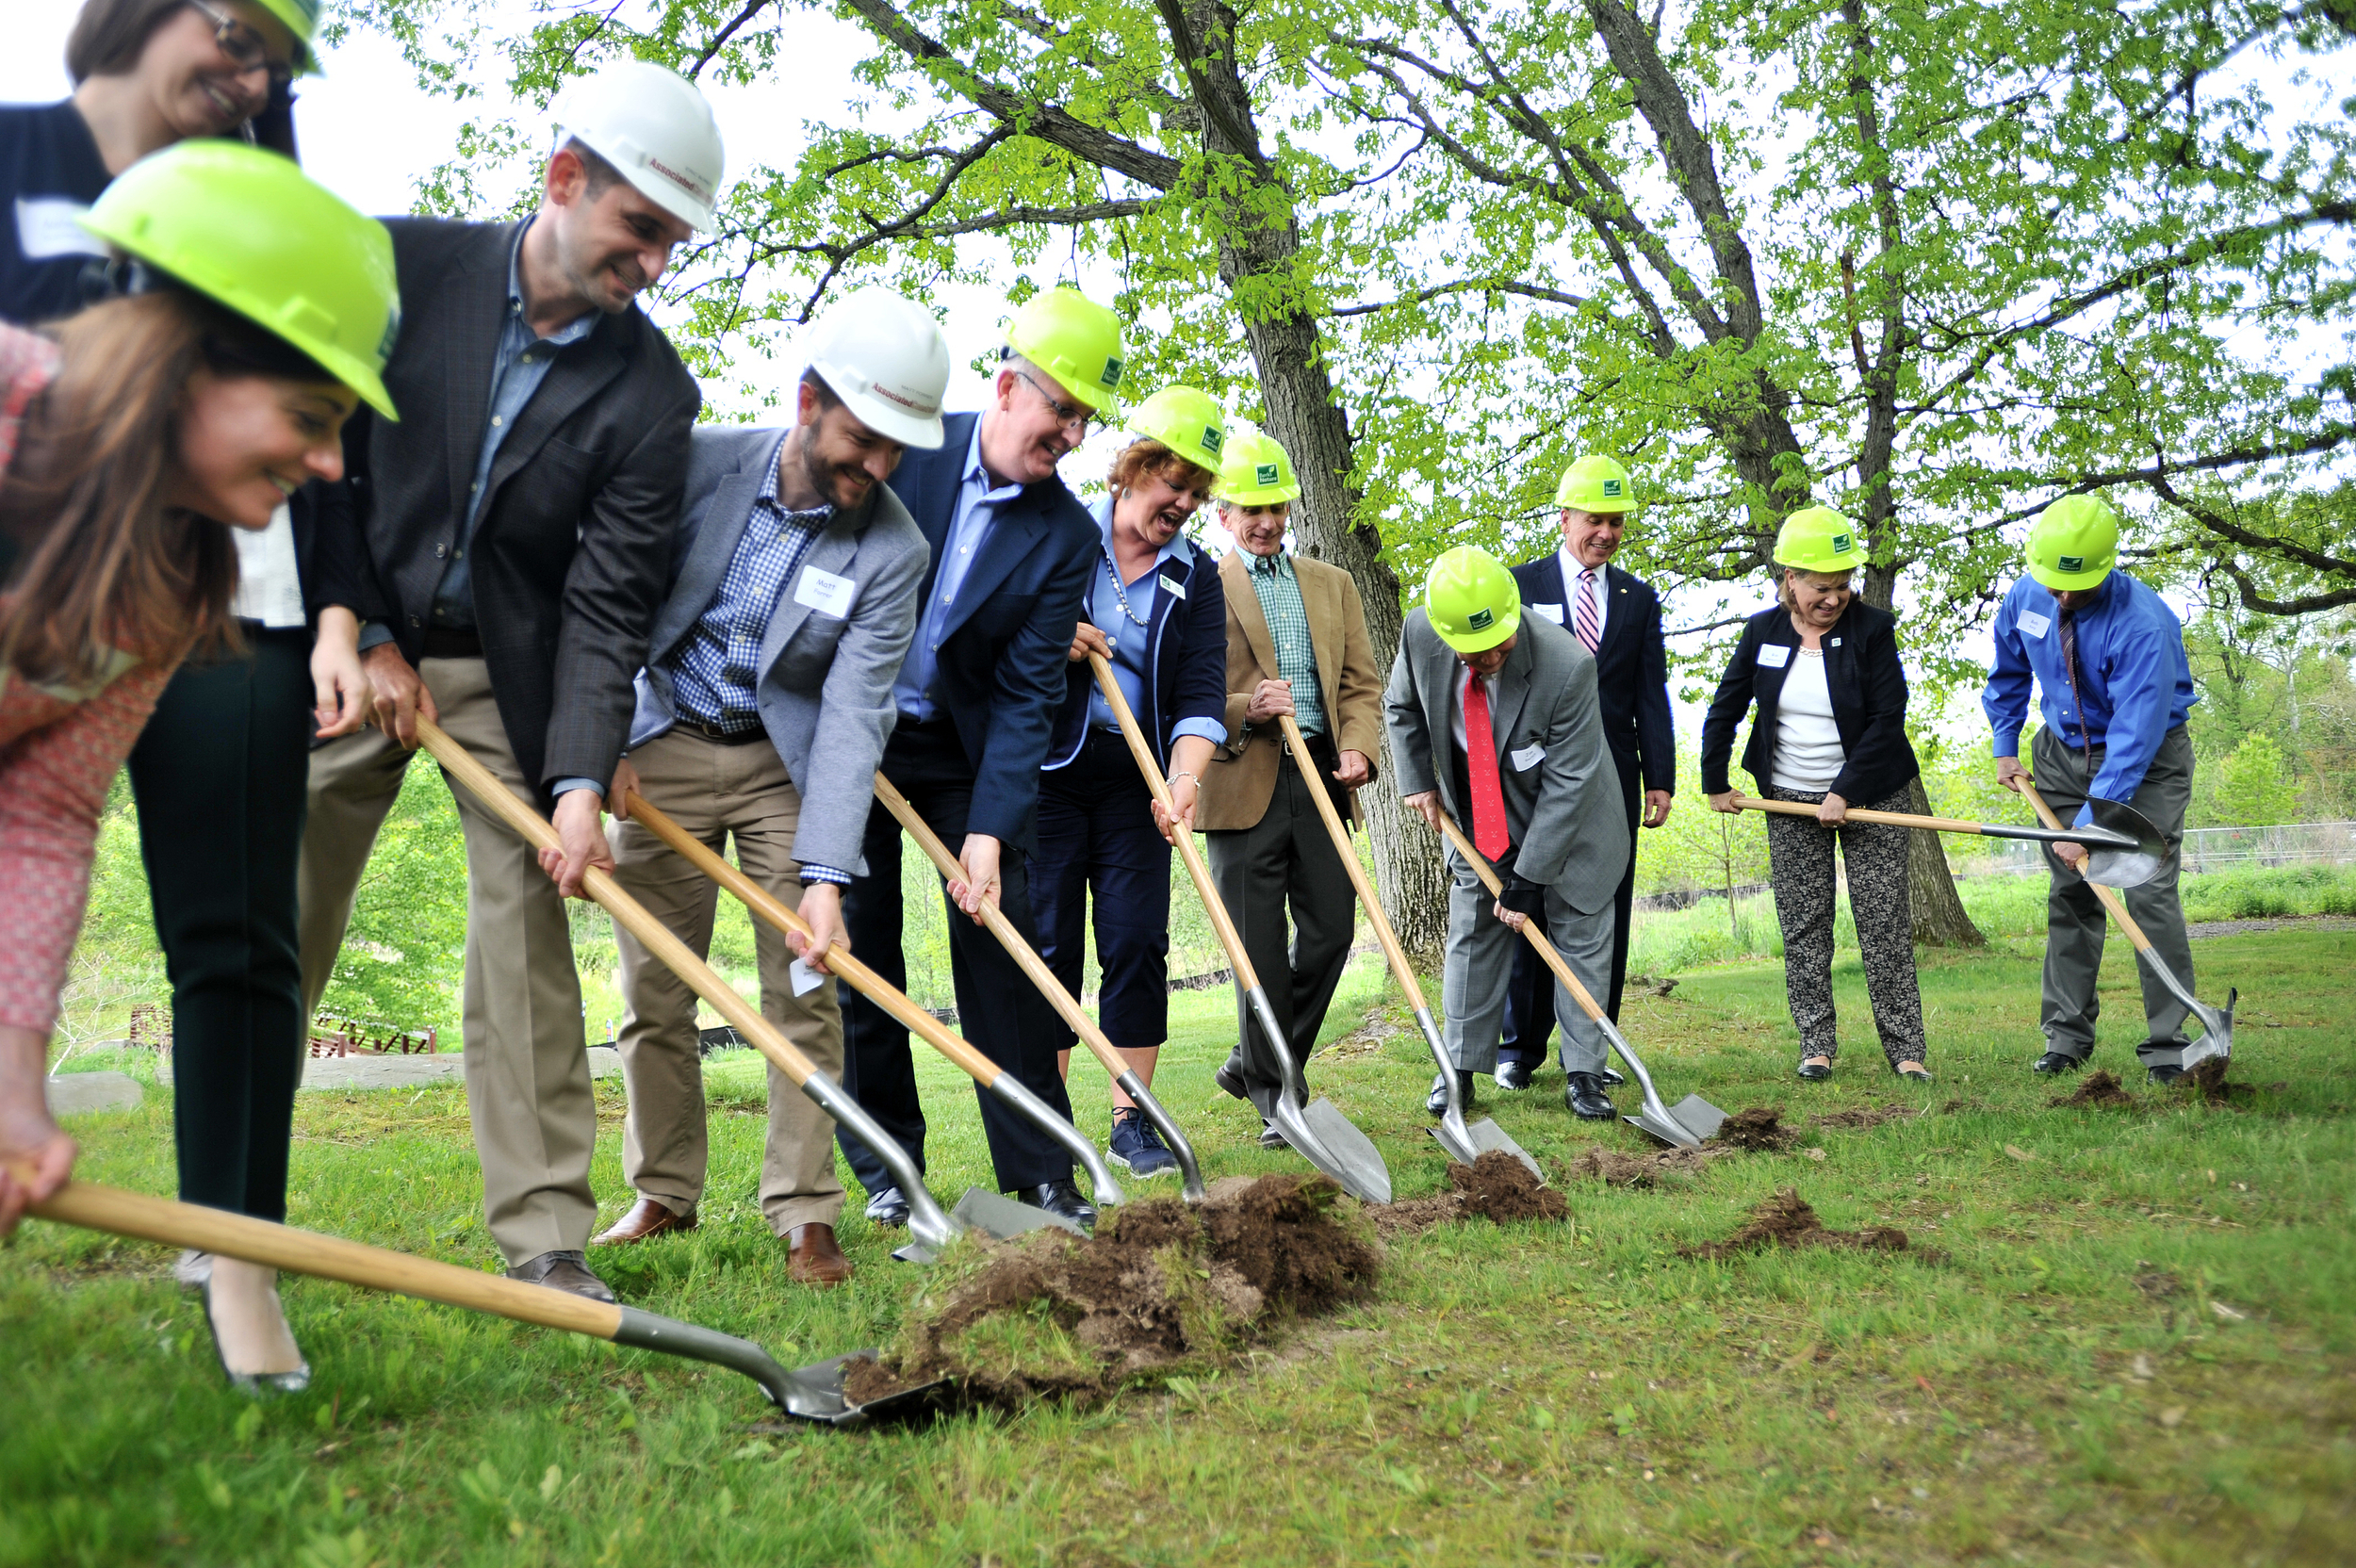 Members of the Berks Nature board and representatives from various planning agencies break ground during a ceremony held on May 18, 2016,to mark the start of building Berks County's new nature center in Reading, Pennsylvania.